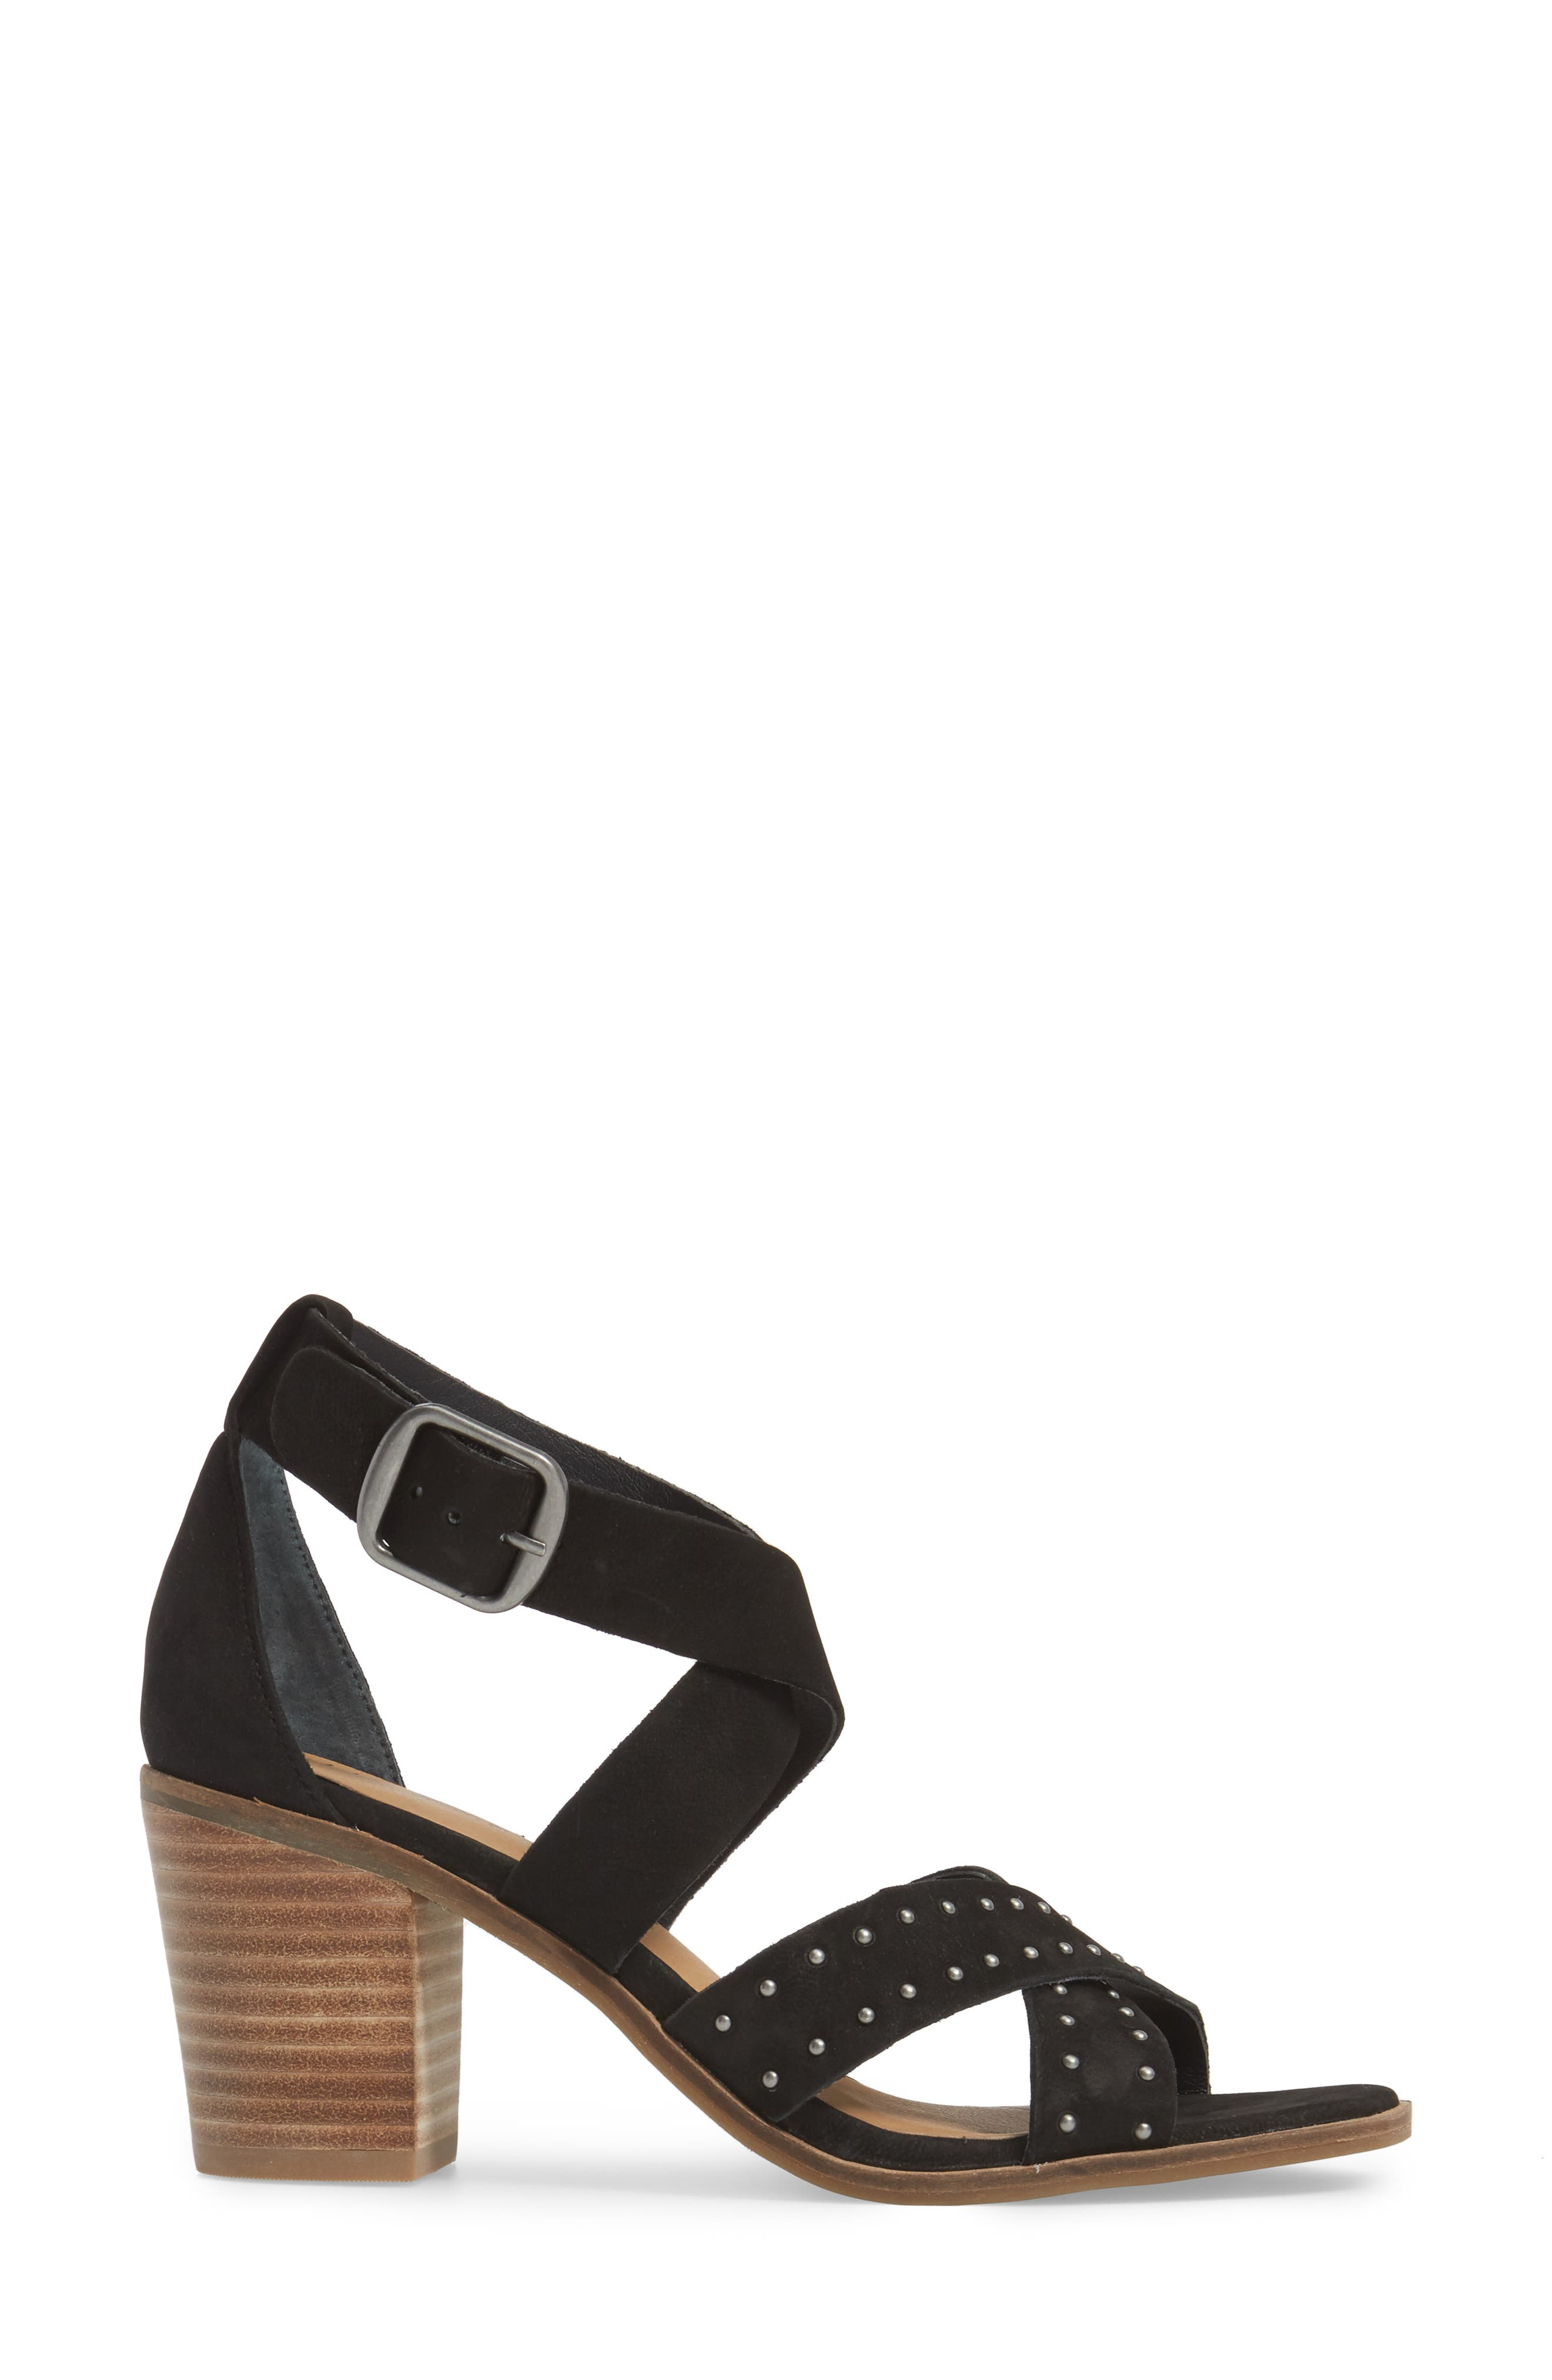 LUCKY BRAND, Kesey Block Heel Sandal, Alternate thumbnail 3, color, 001